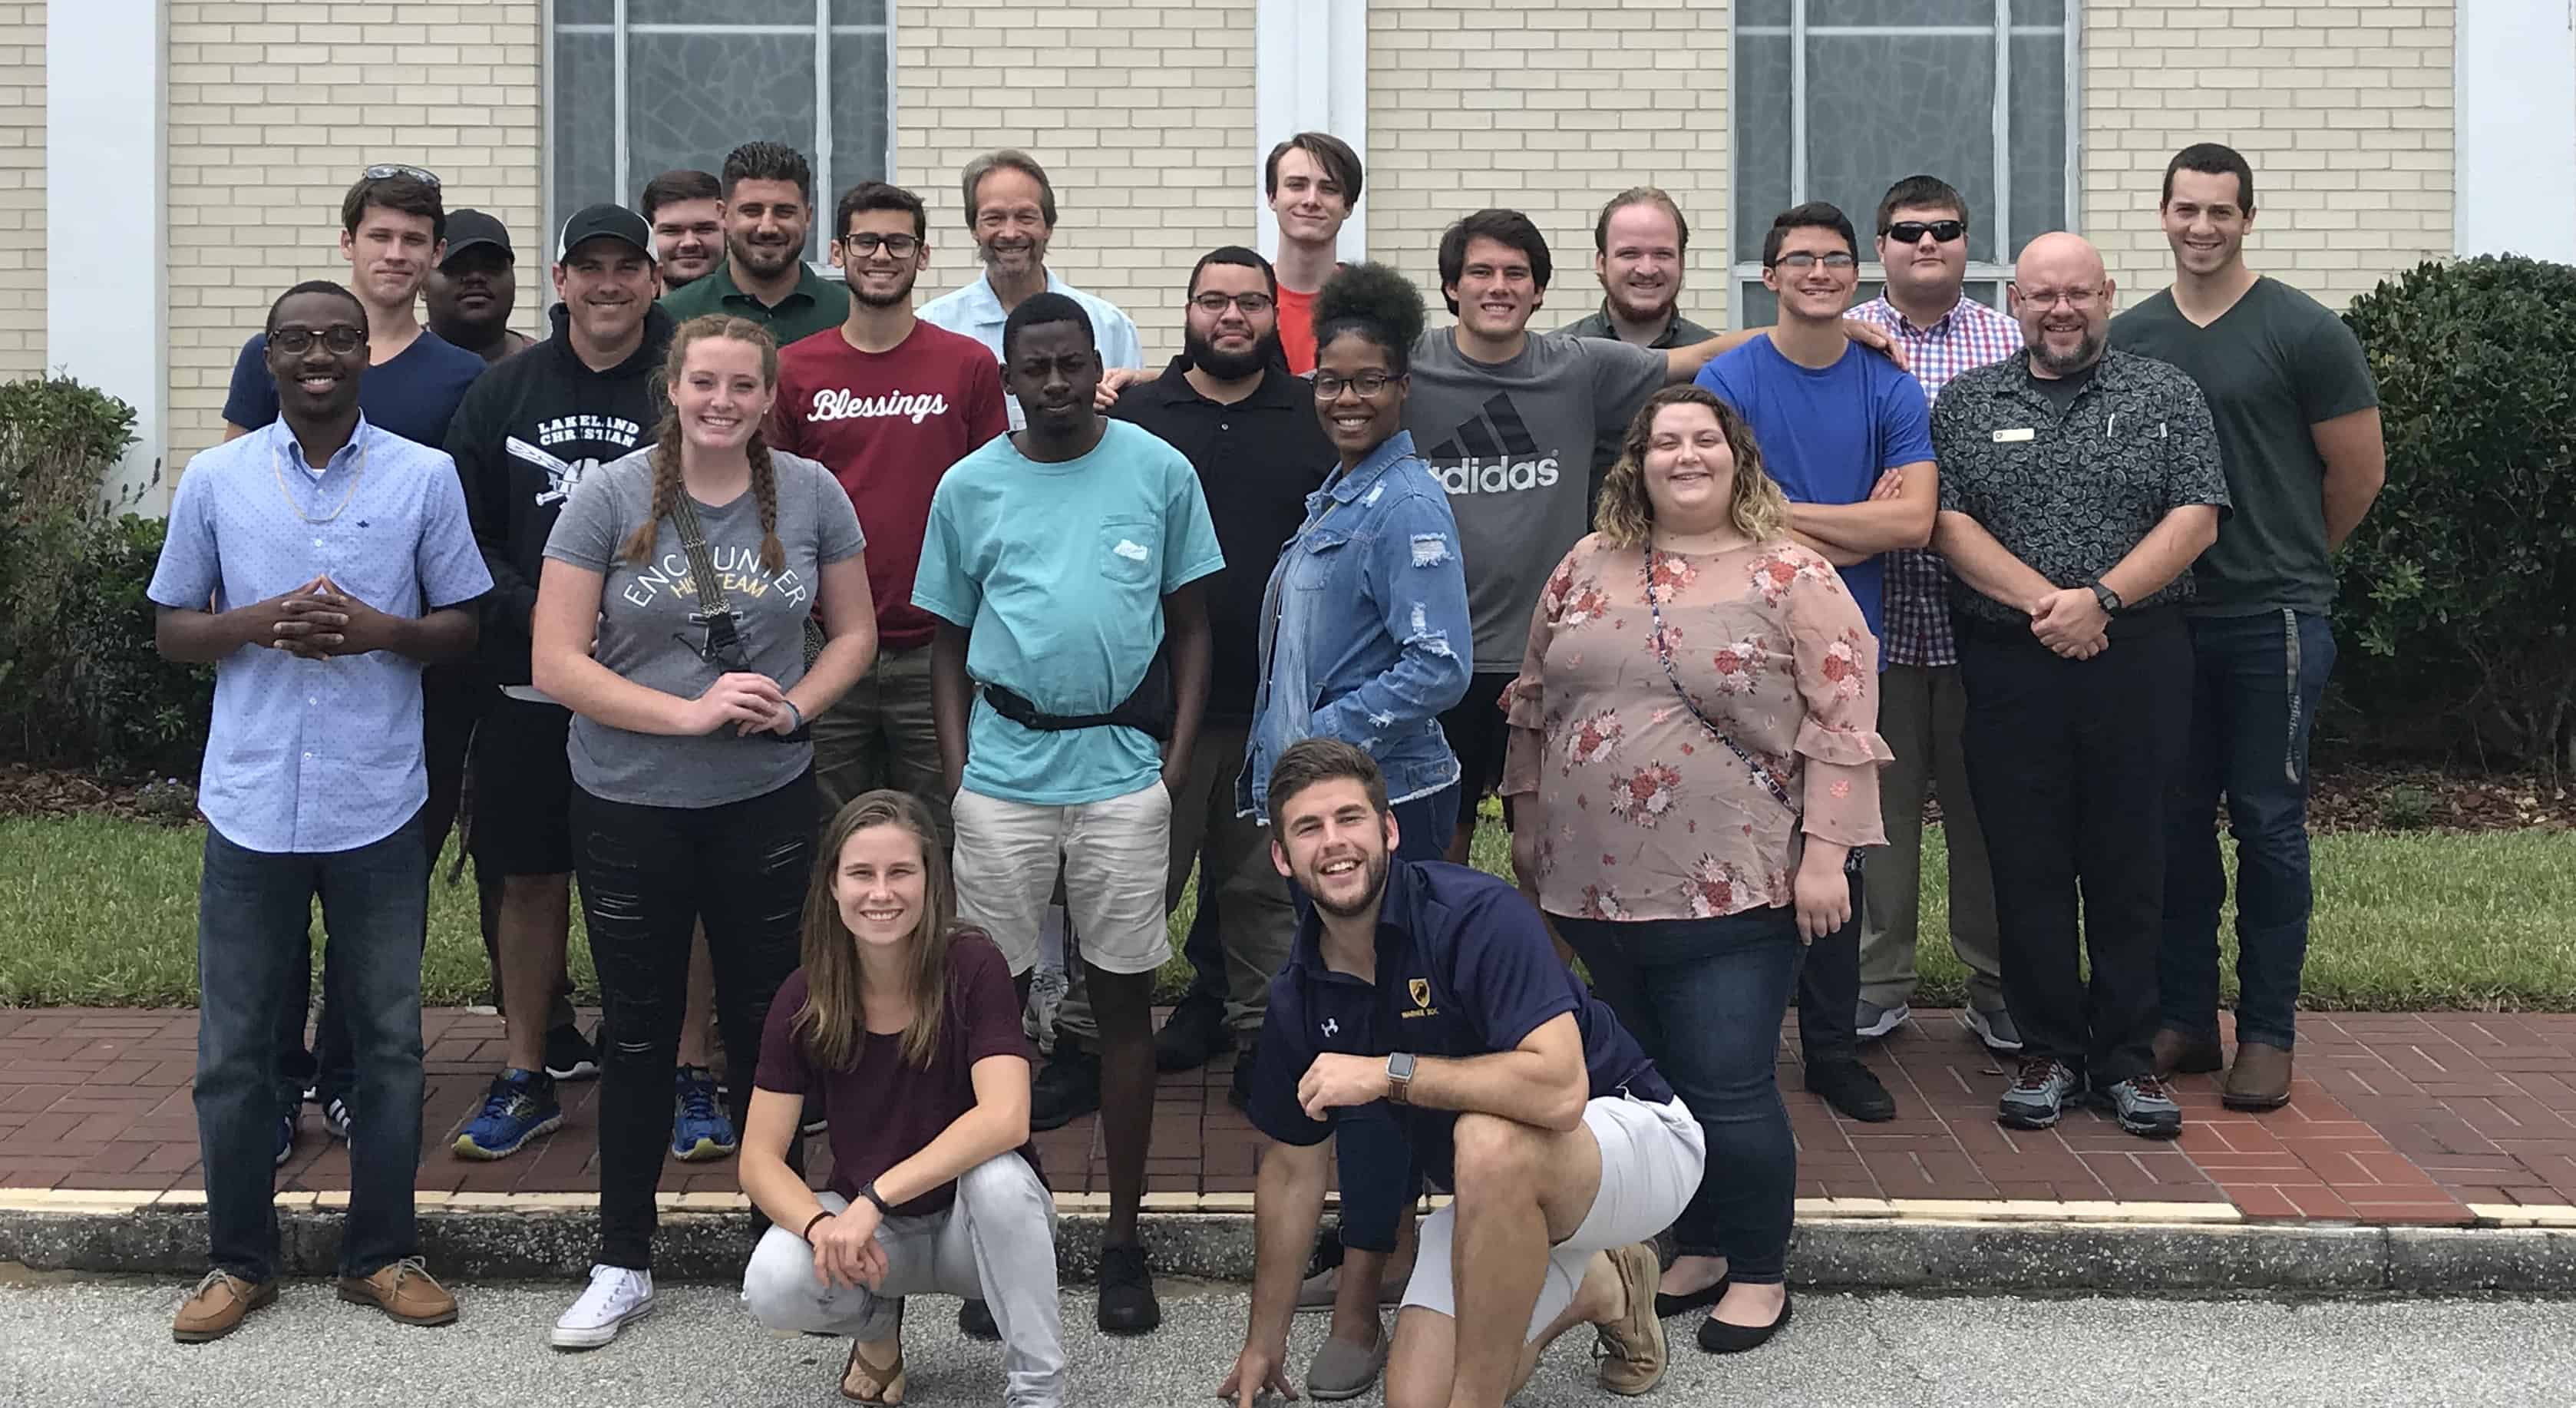 The Ministry Trip: April, 2019